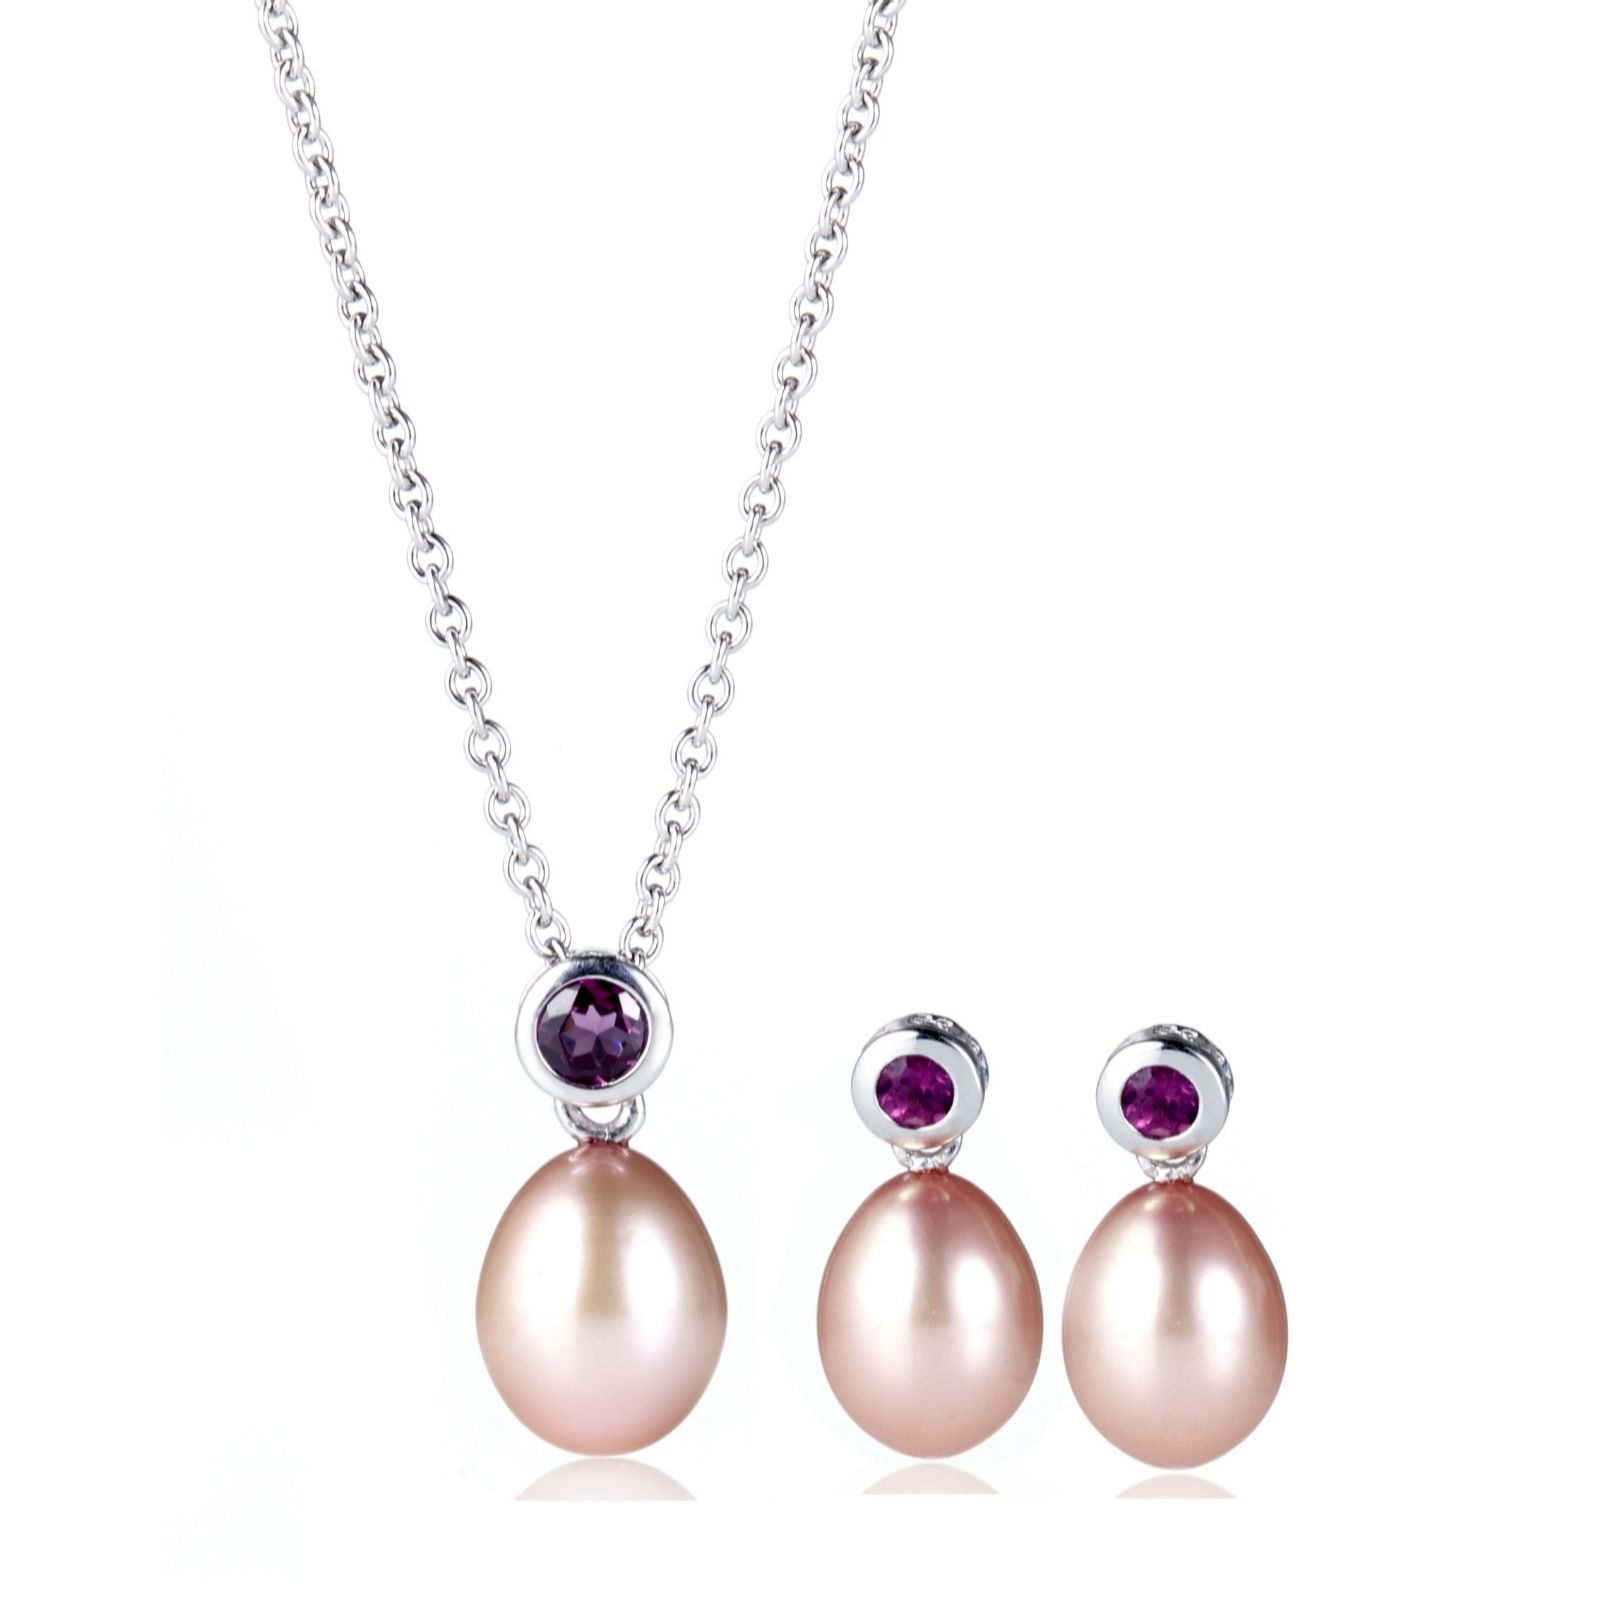 pearl by original silver product necklace pendant claudette worters in claudetteworters blush pink